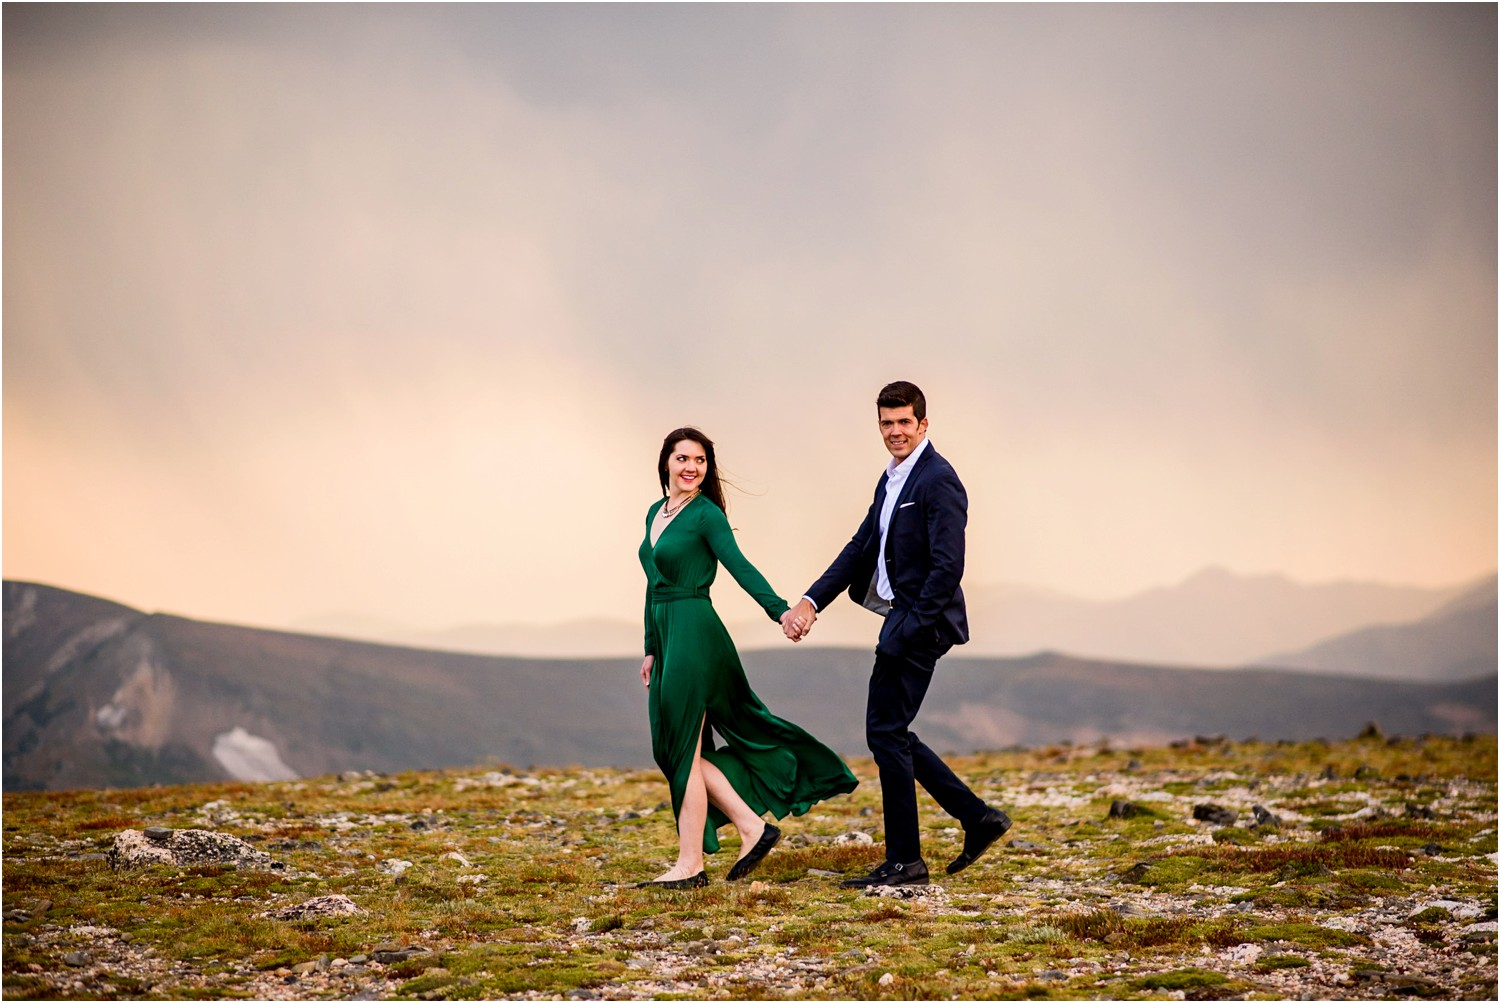 Rocky-mountain-national-Park-engagement-photography_0019.jpg